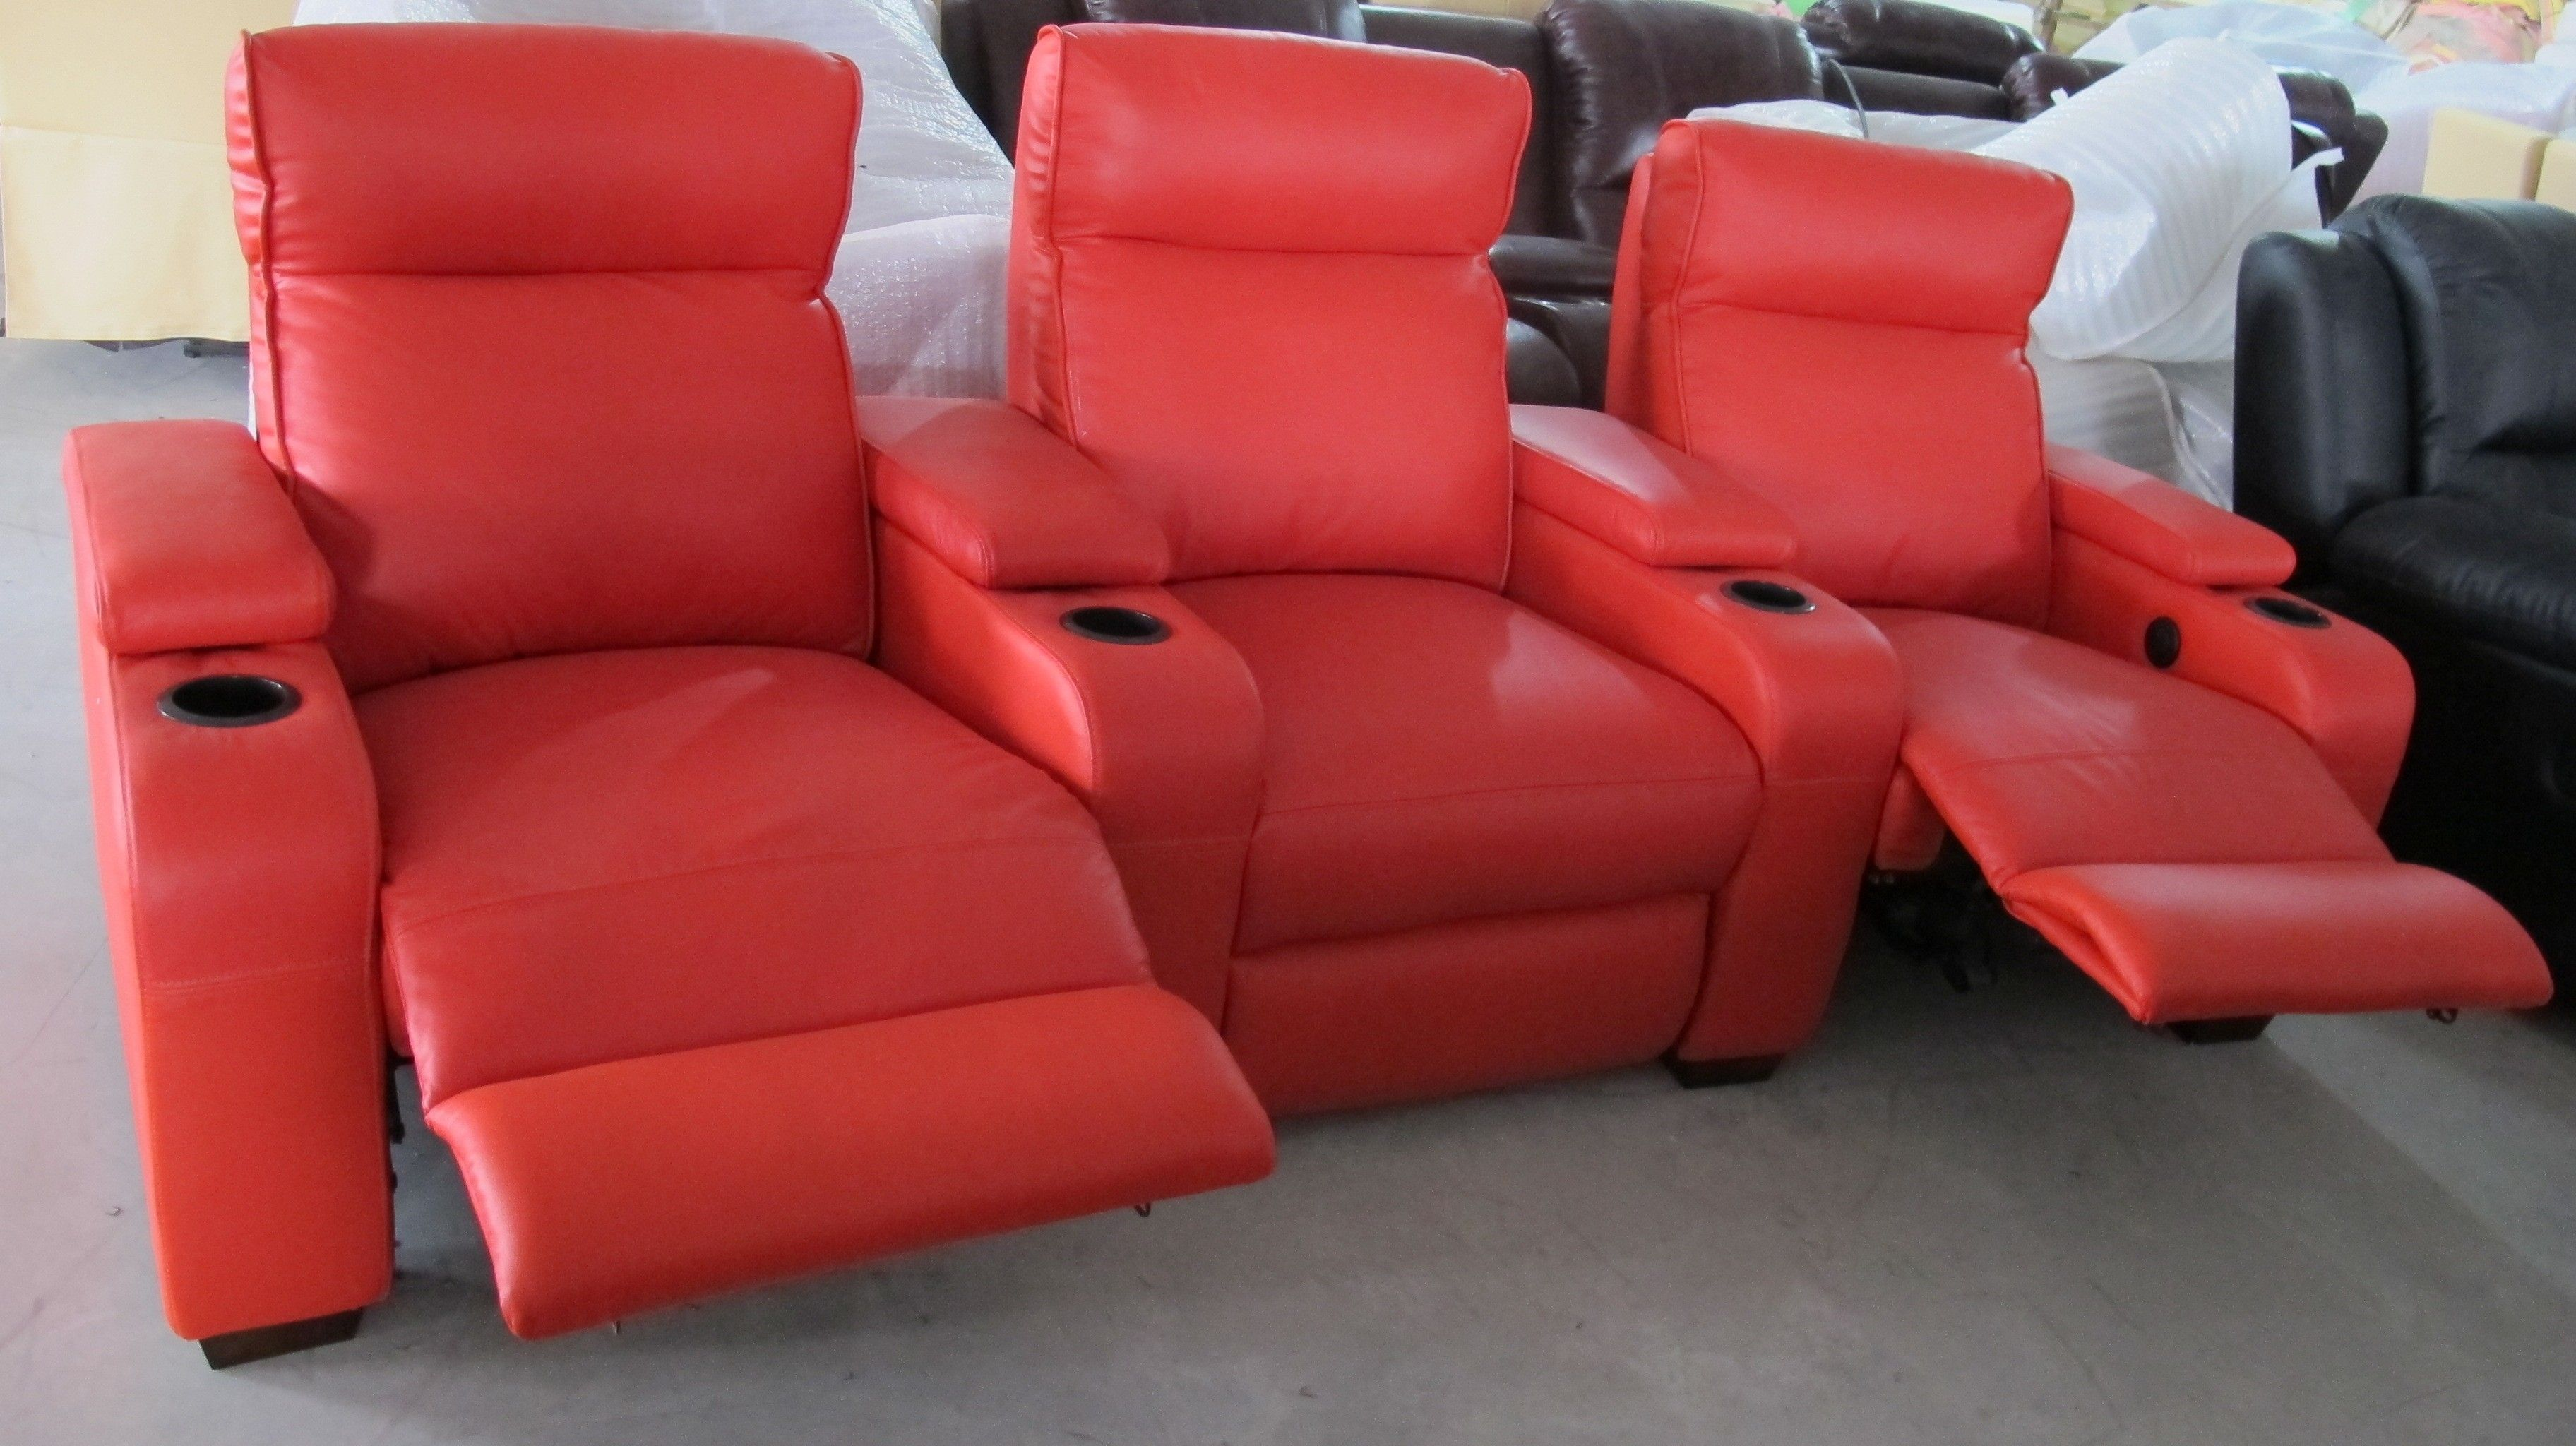 Furniture Living Room Exotic Three Pieces Red Leather Recliner Sofa Lazy Boy